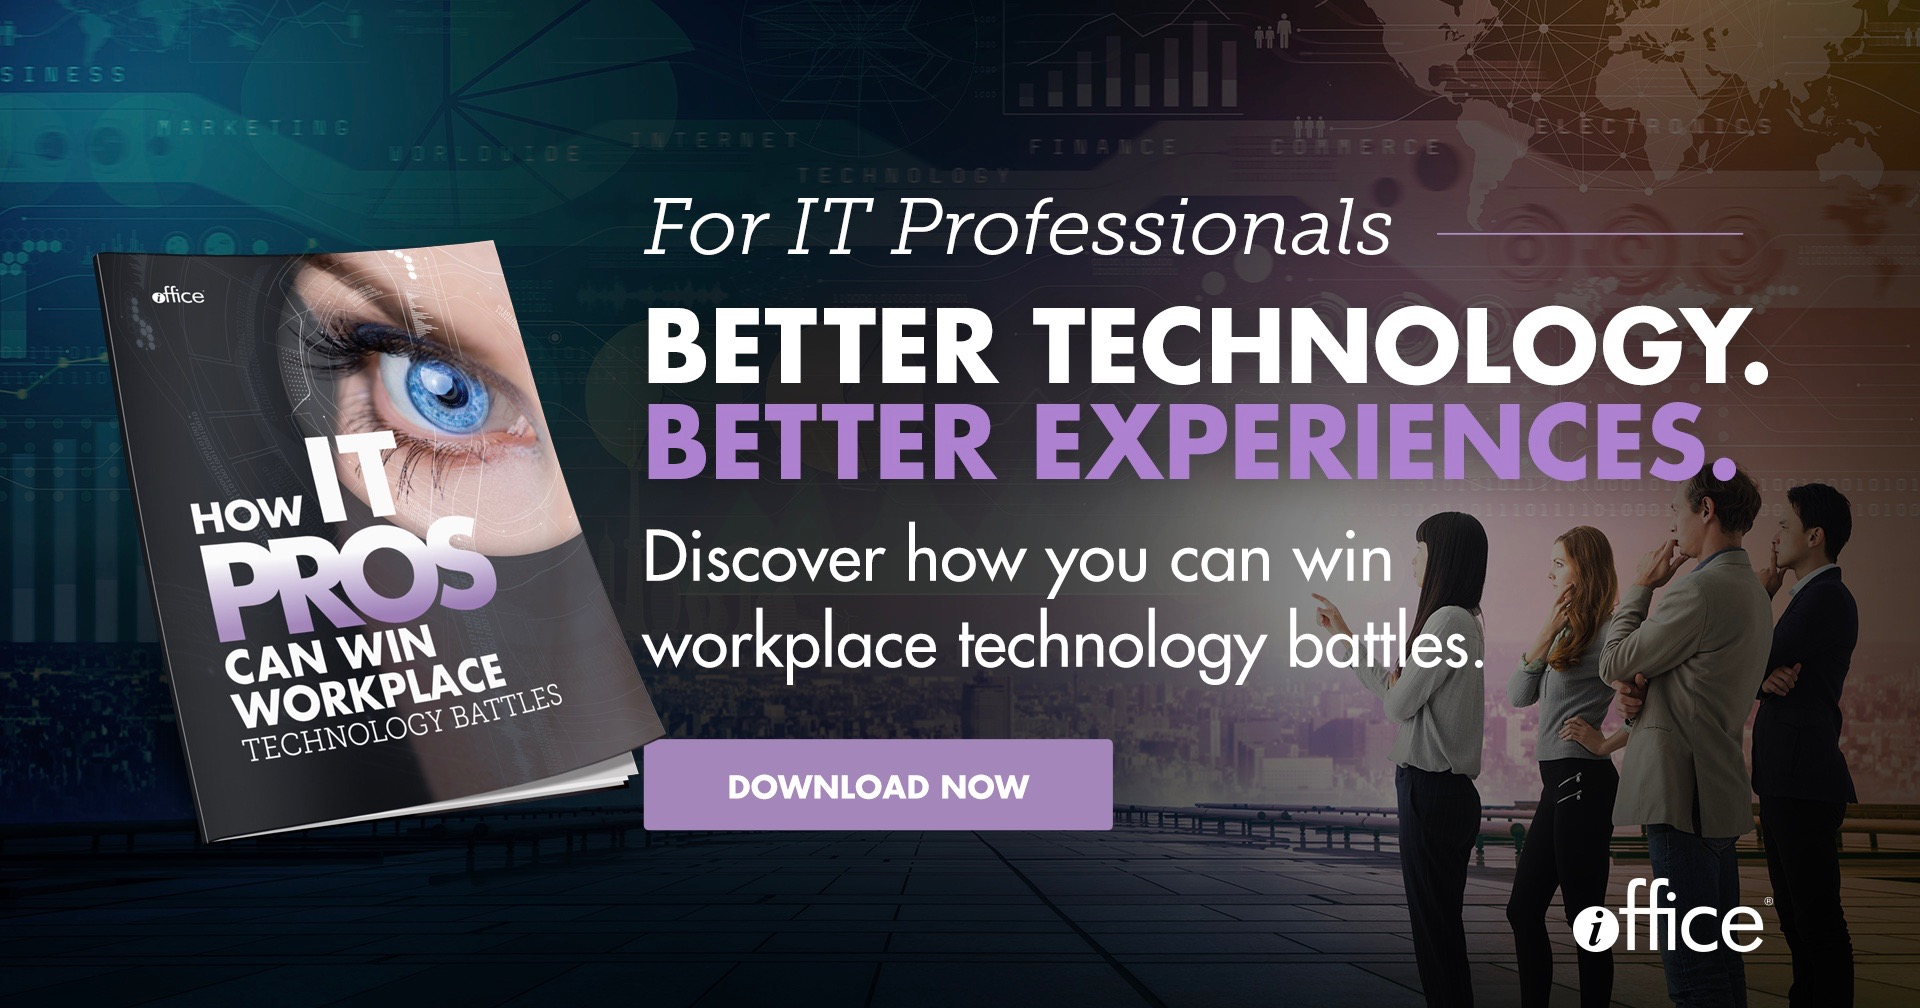 How IT Pros Can Win Workplace Technology Battles